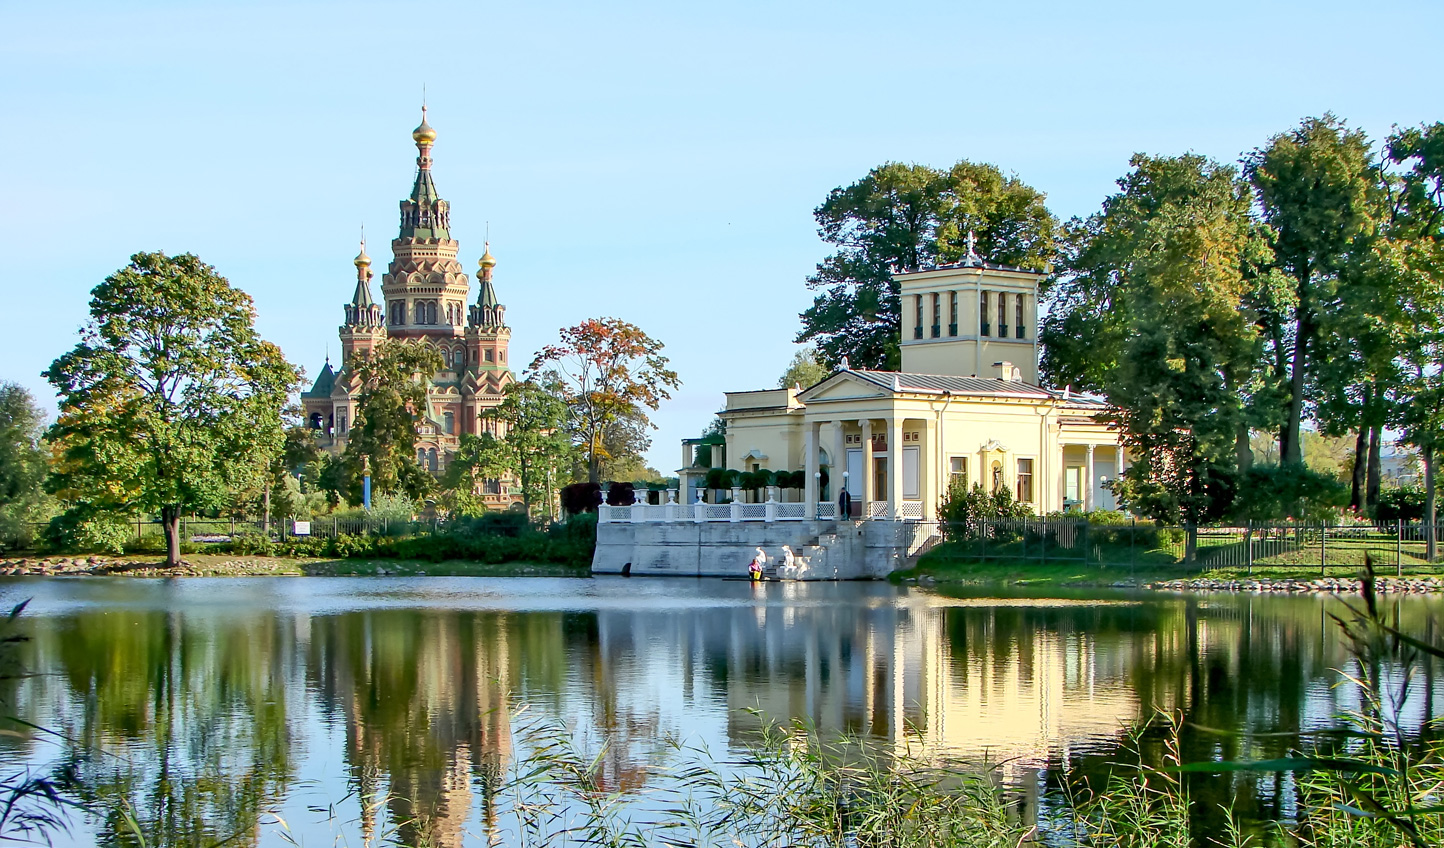 Take a stroll through the gardens of Peterhof, admiring its palaces, churches and more